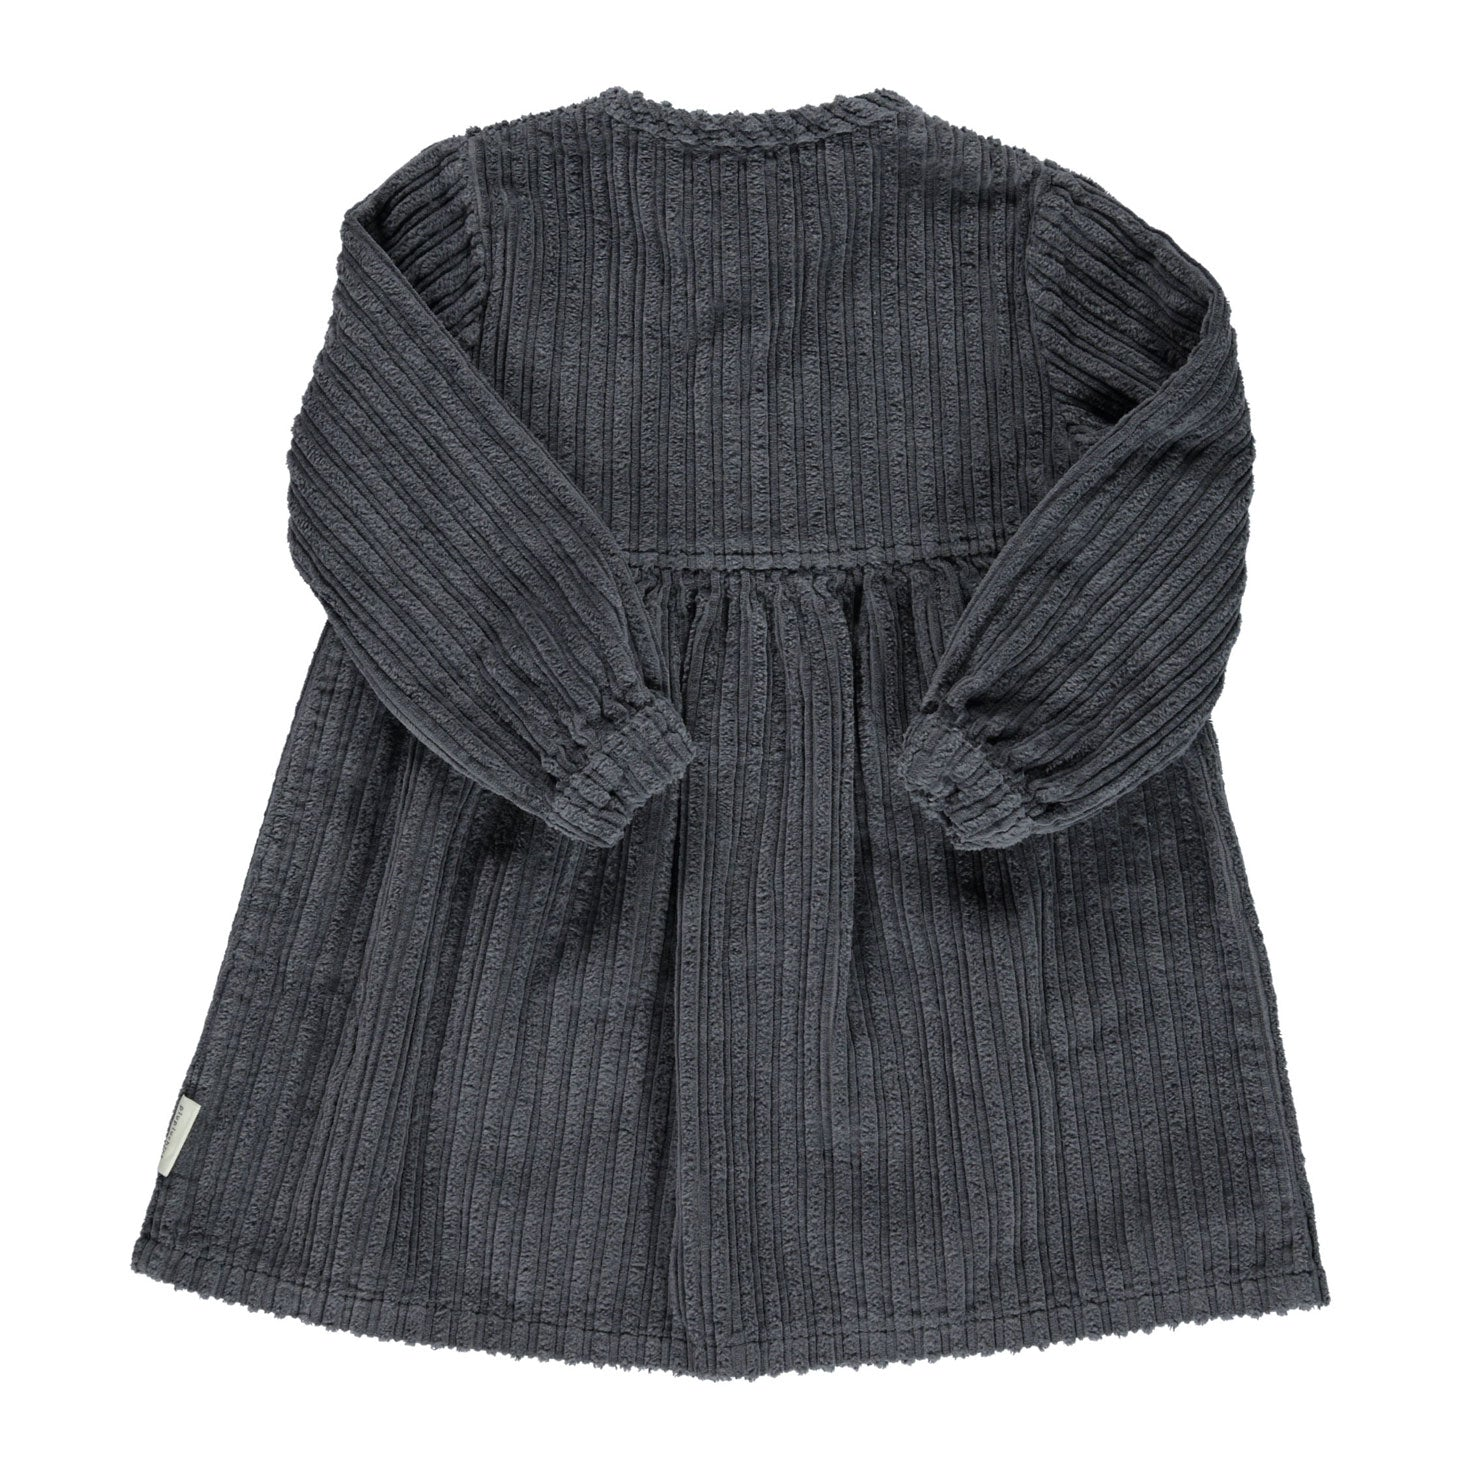 Piupiuchick Anthracite Corduroy Short Dress